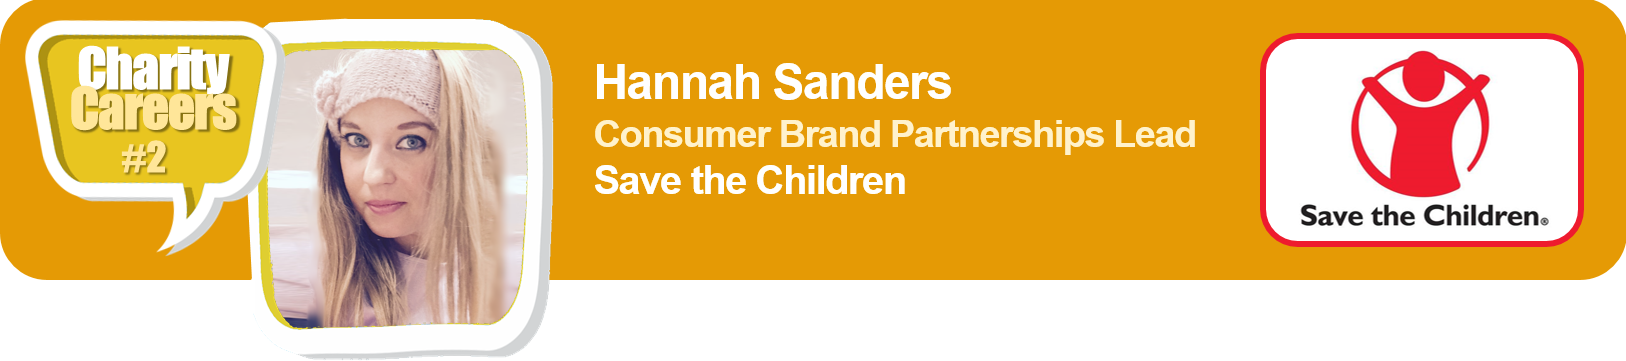 CharityCareers interview 2 with Hannah Sanders of Save the Children